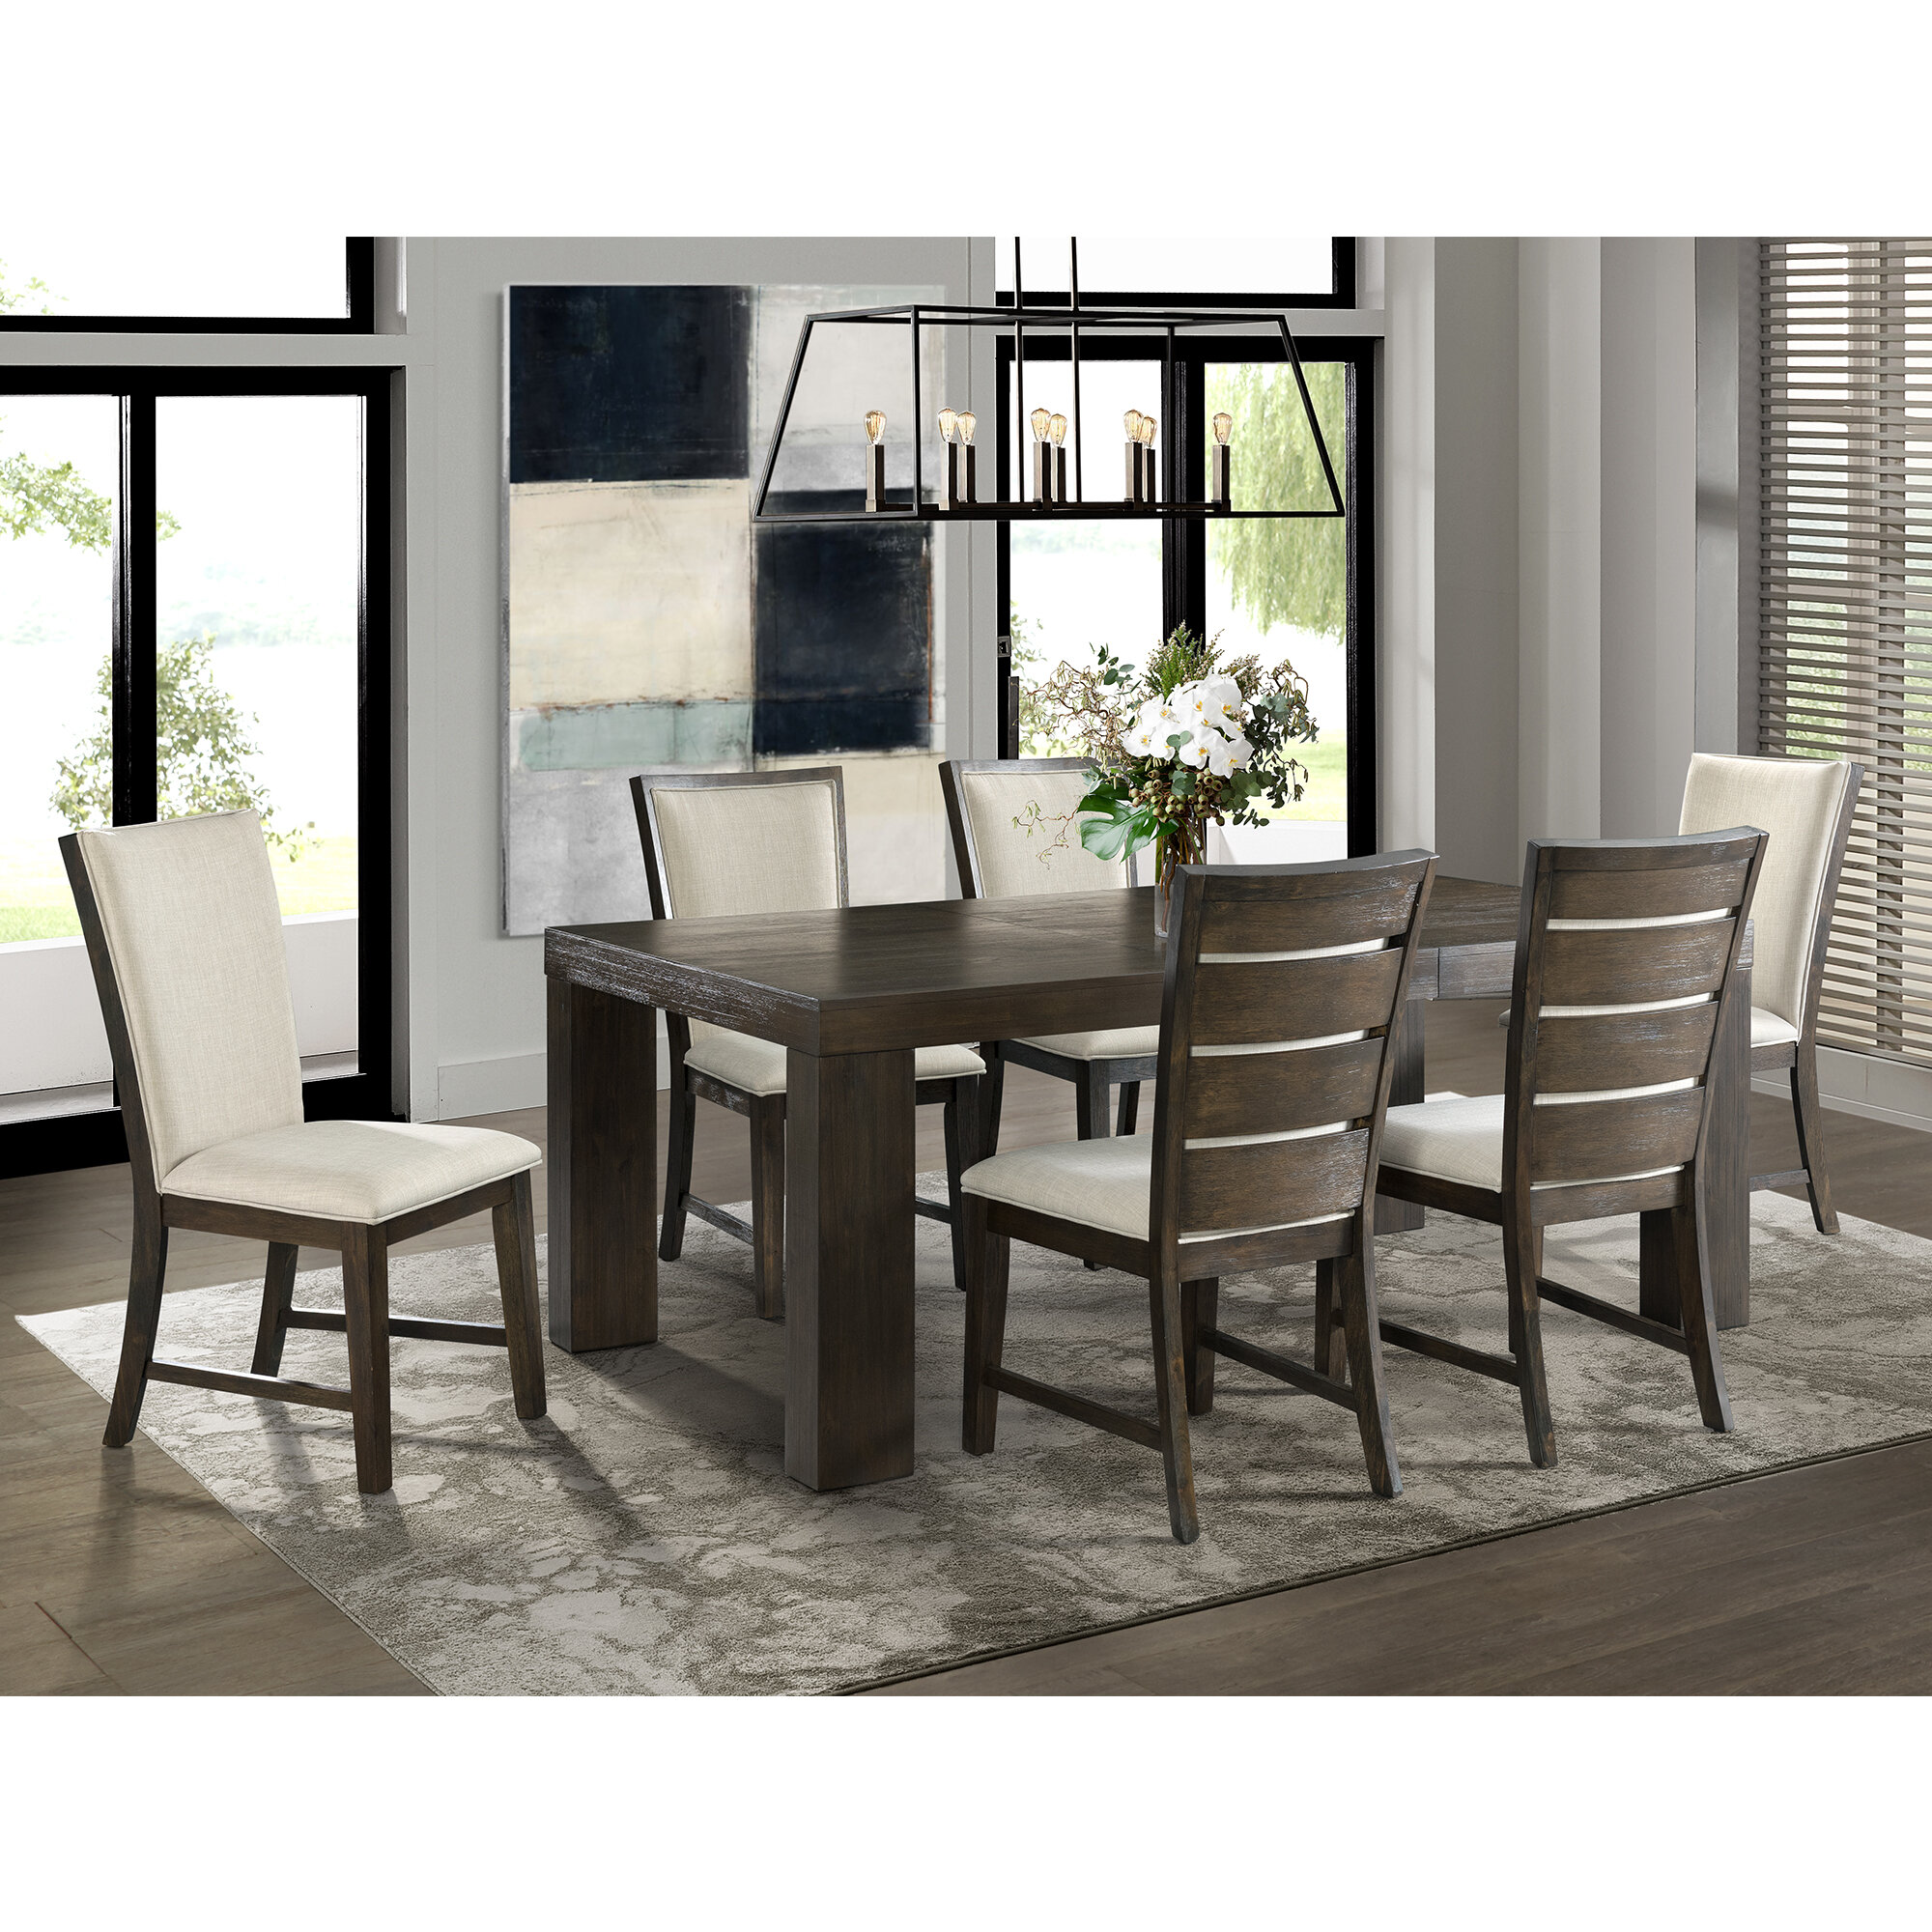 Laurel Foundry Modern Farmhouse Joey 7 Piece Solid Wood Dining Set Reviews Wayfair